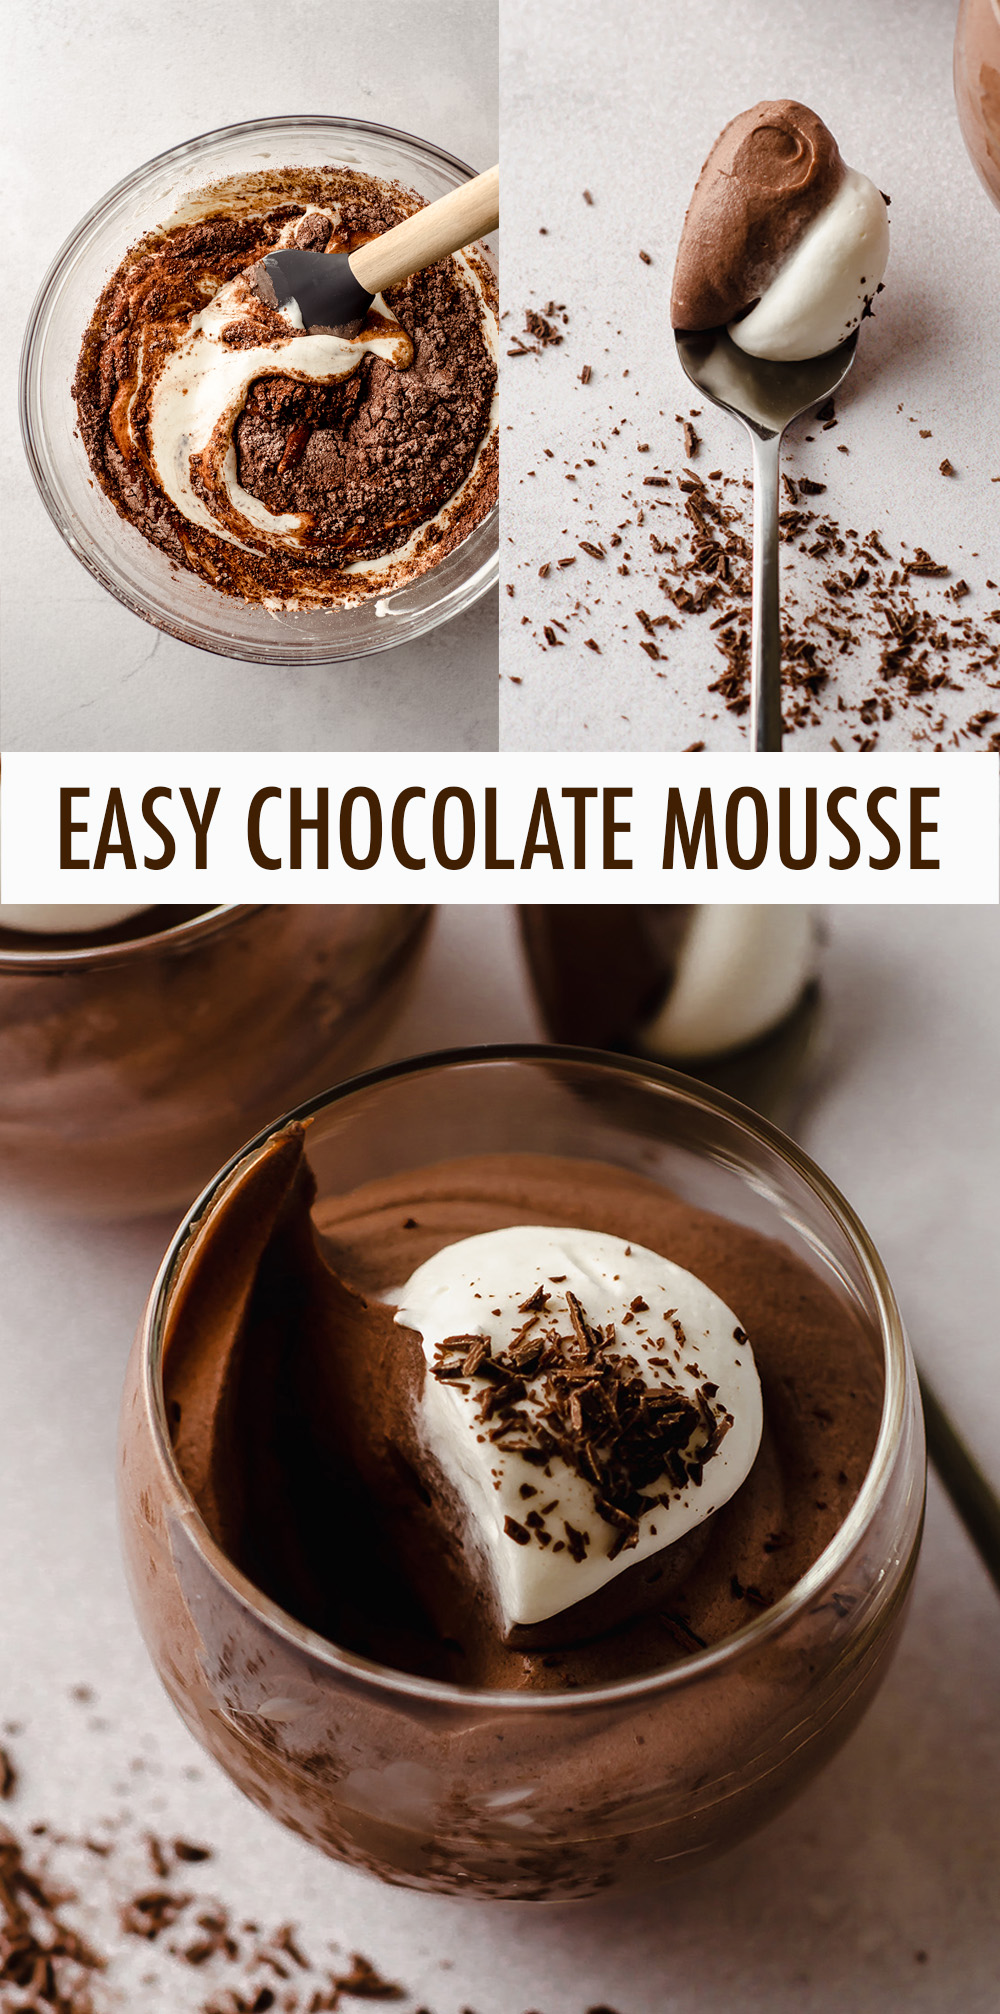 This simple and quick chocolate mousse comes together in less than 10 minutes and is made without any eggs. Top with whipped cream or berries for a light and refreshing dessert!